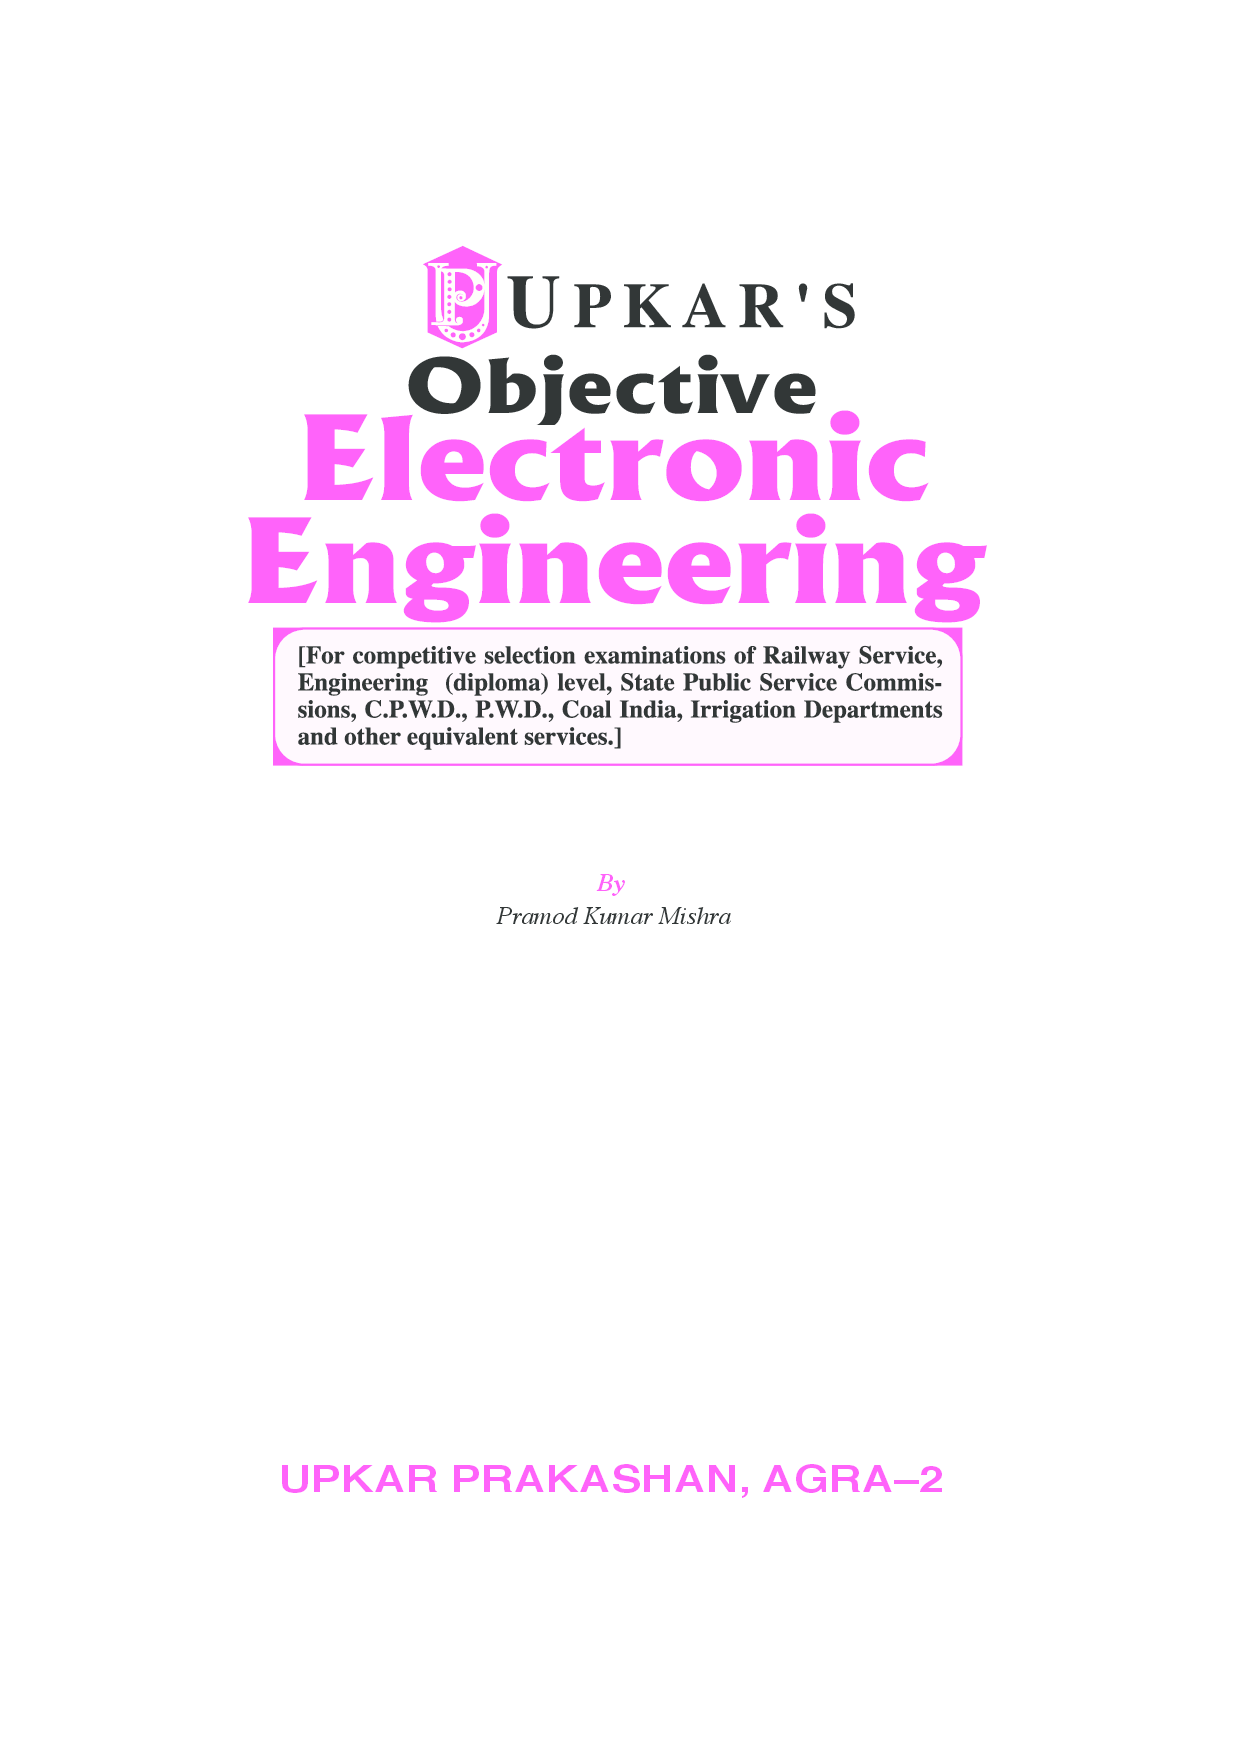 Objective Electronic Engineering Railway and Other Engineering Diploma Compettive Exams - Page 2